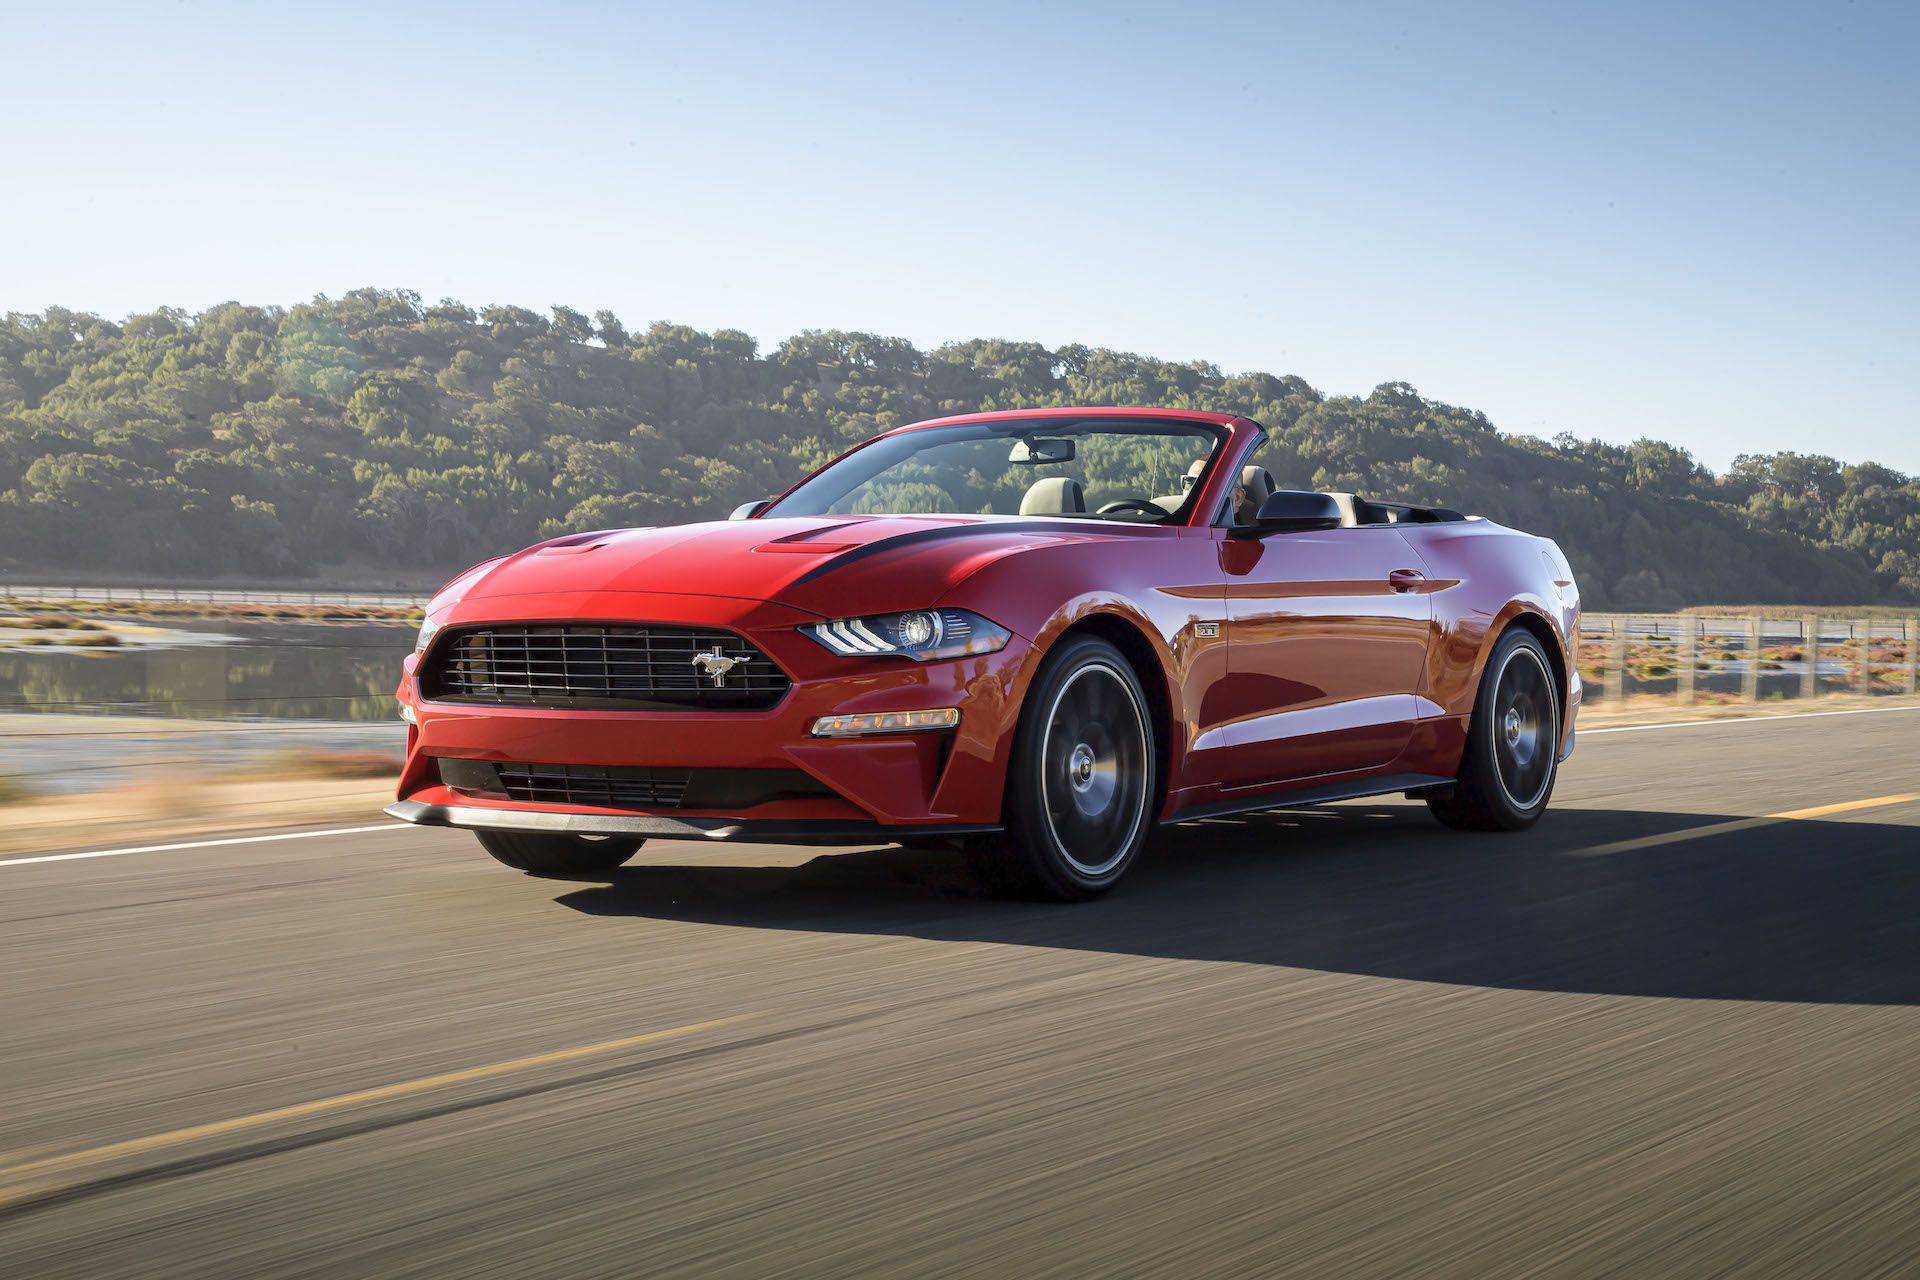 Https Www Motorauthority Com News 1125136 First Drive Review 2020 Ford Mustang 2 3 High Performance Packa Ford Mustang Ecoboost Ford Mustang Mustang Ecoboost